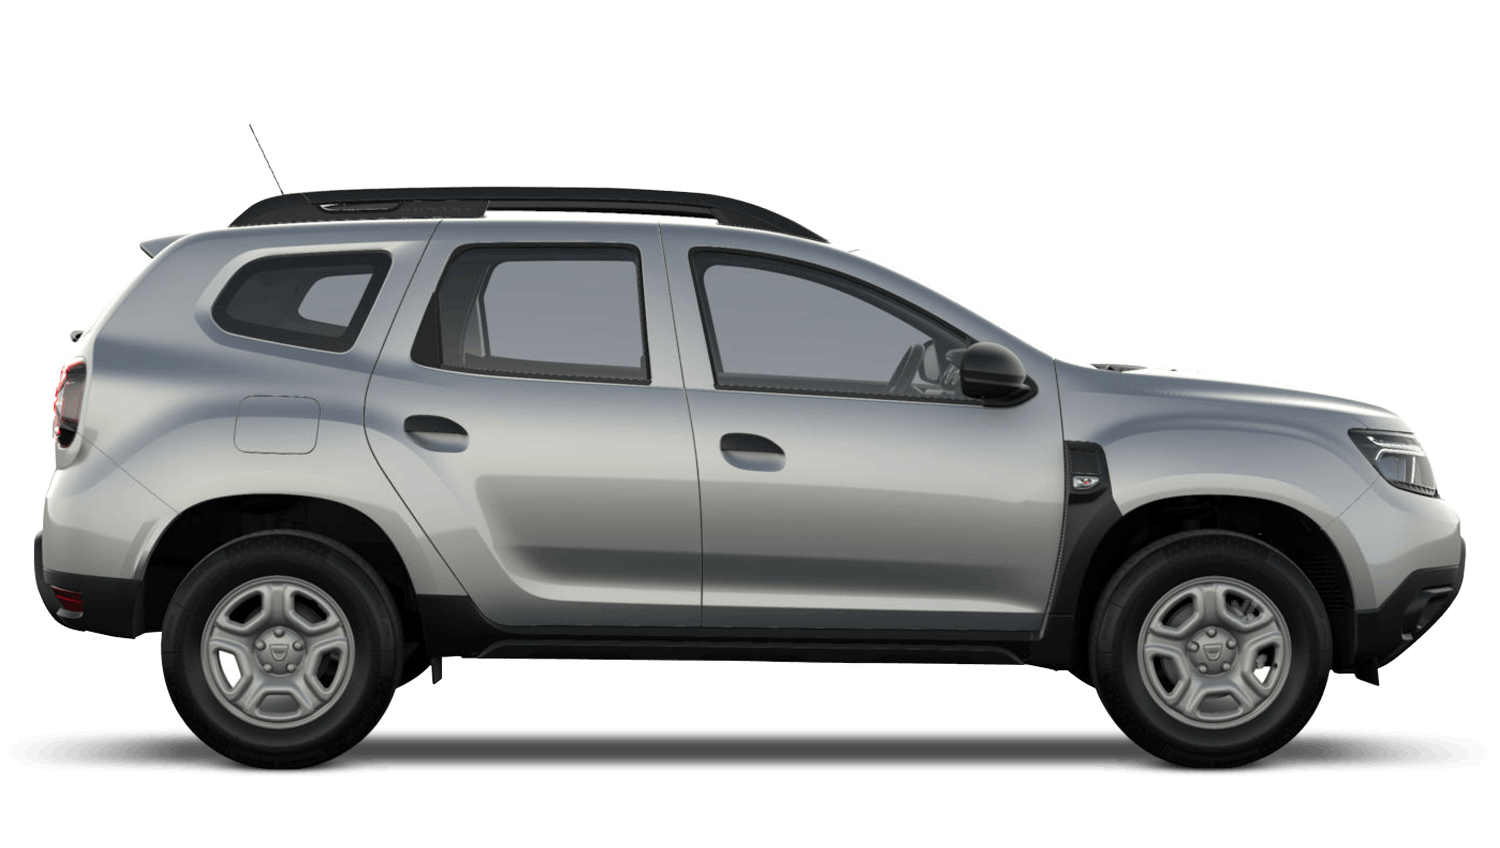 Highland Grey New Dacia Duster